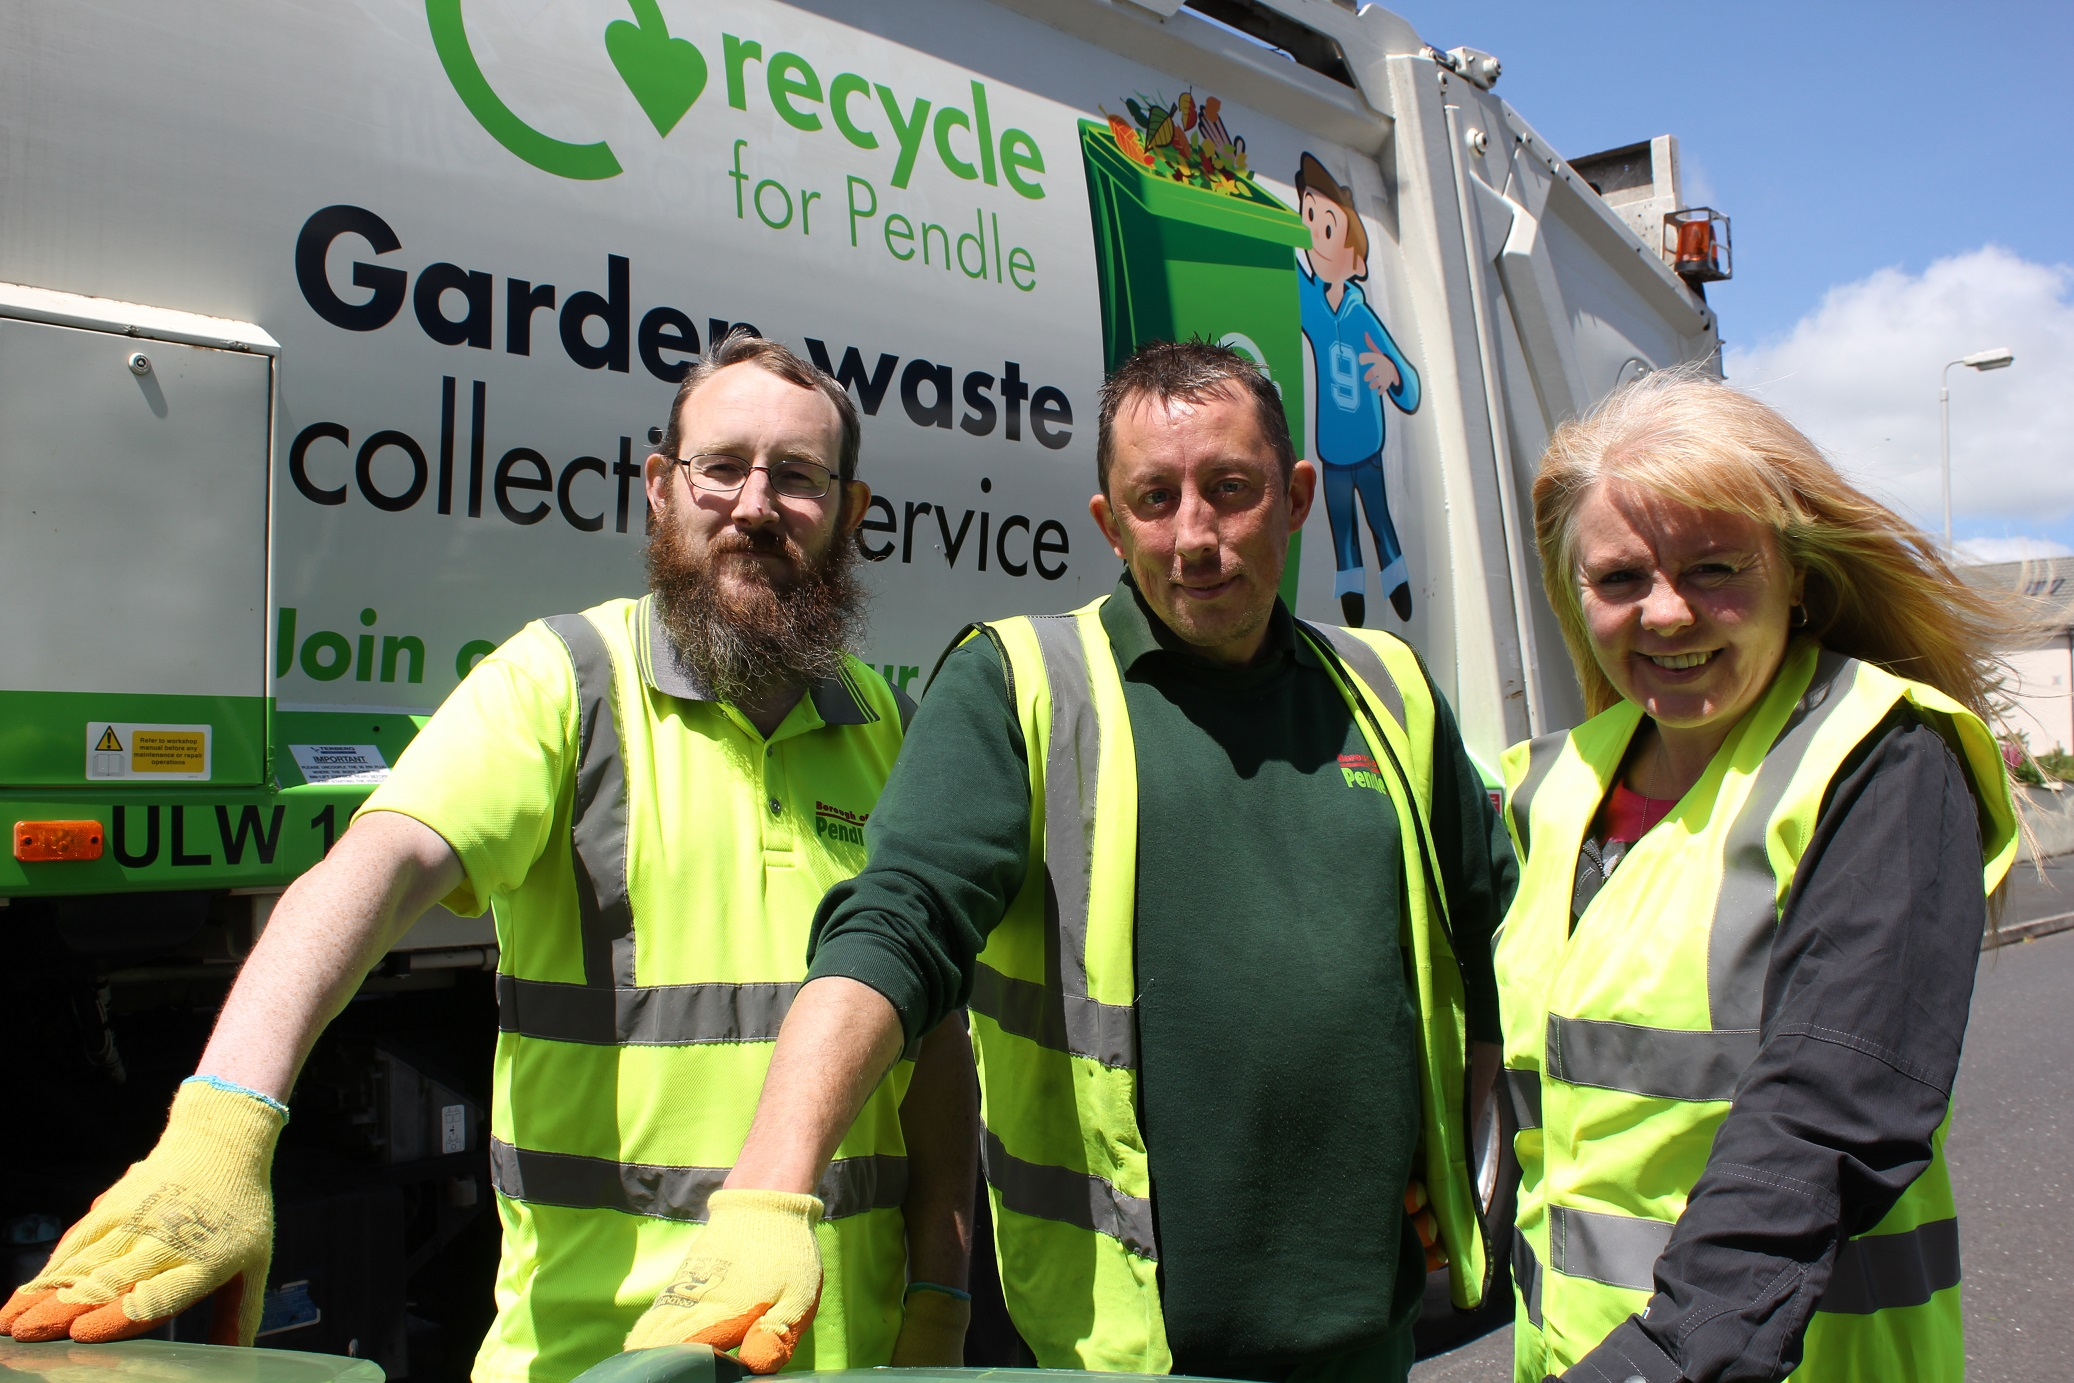 Garden waste collections spring into action in Pendle!